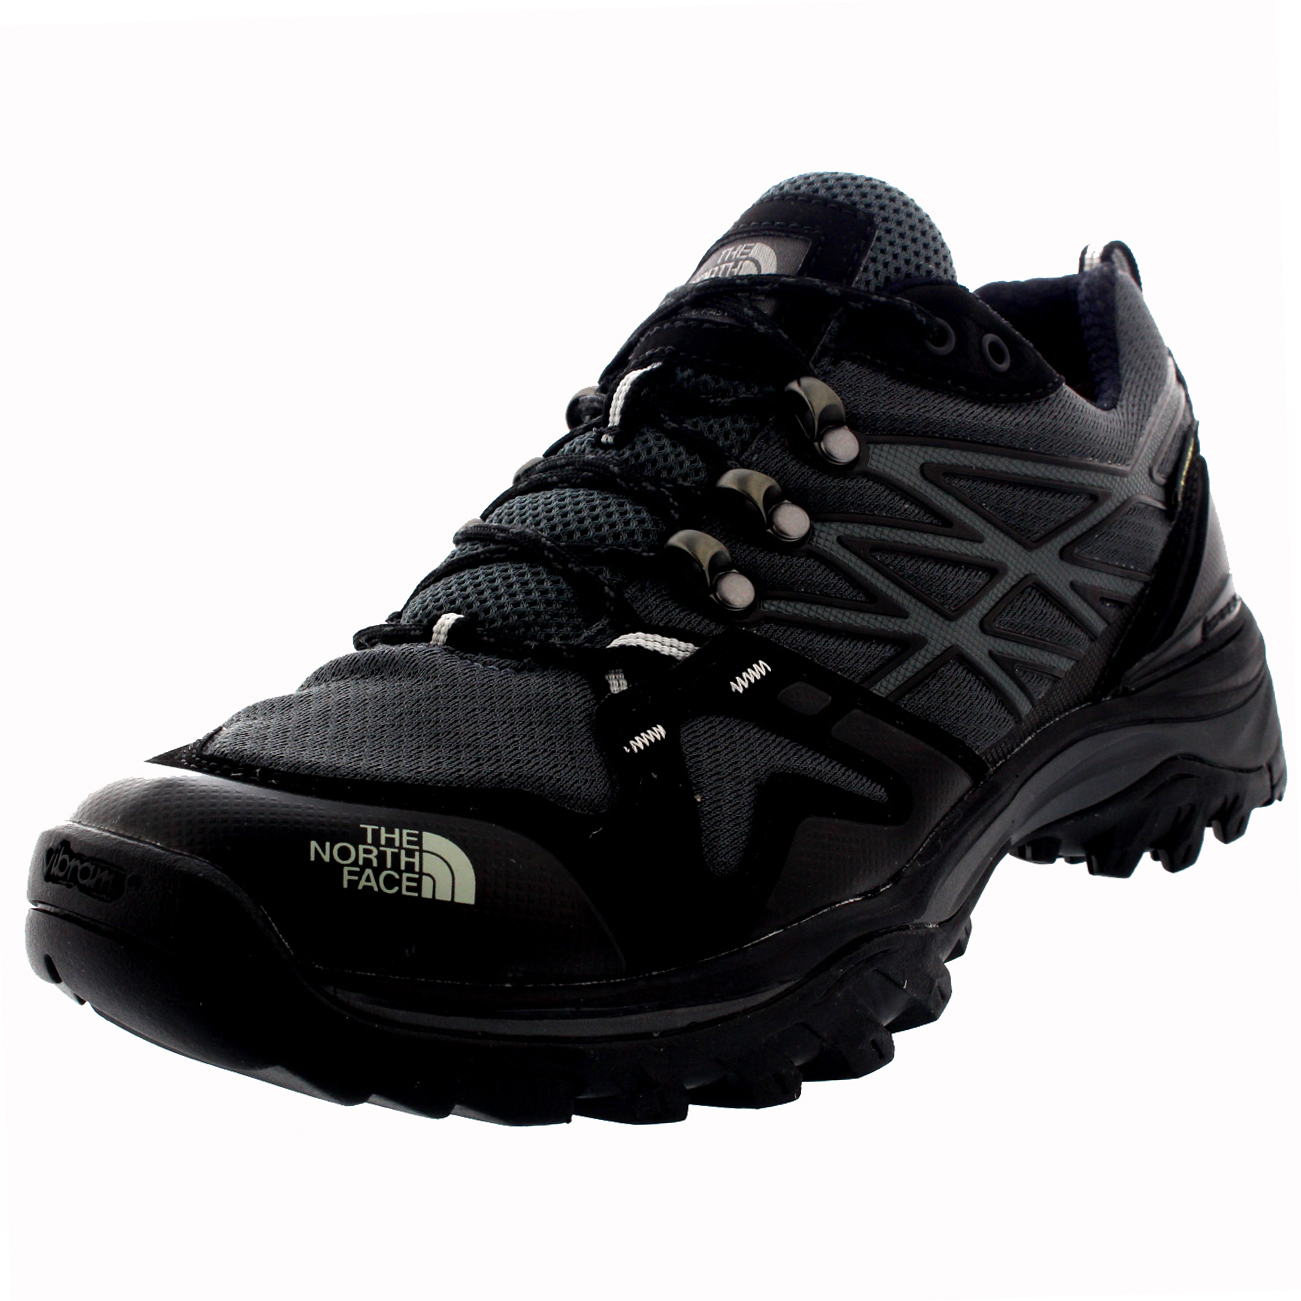 d6a3fb12f20f4 Mens The North Face Hedgehog Fastpack Gtx Outdoors Waterproof Trainers UK  7-12